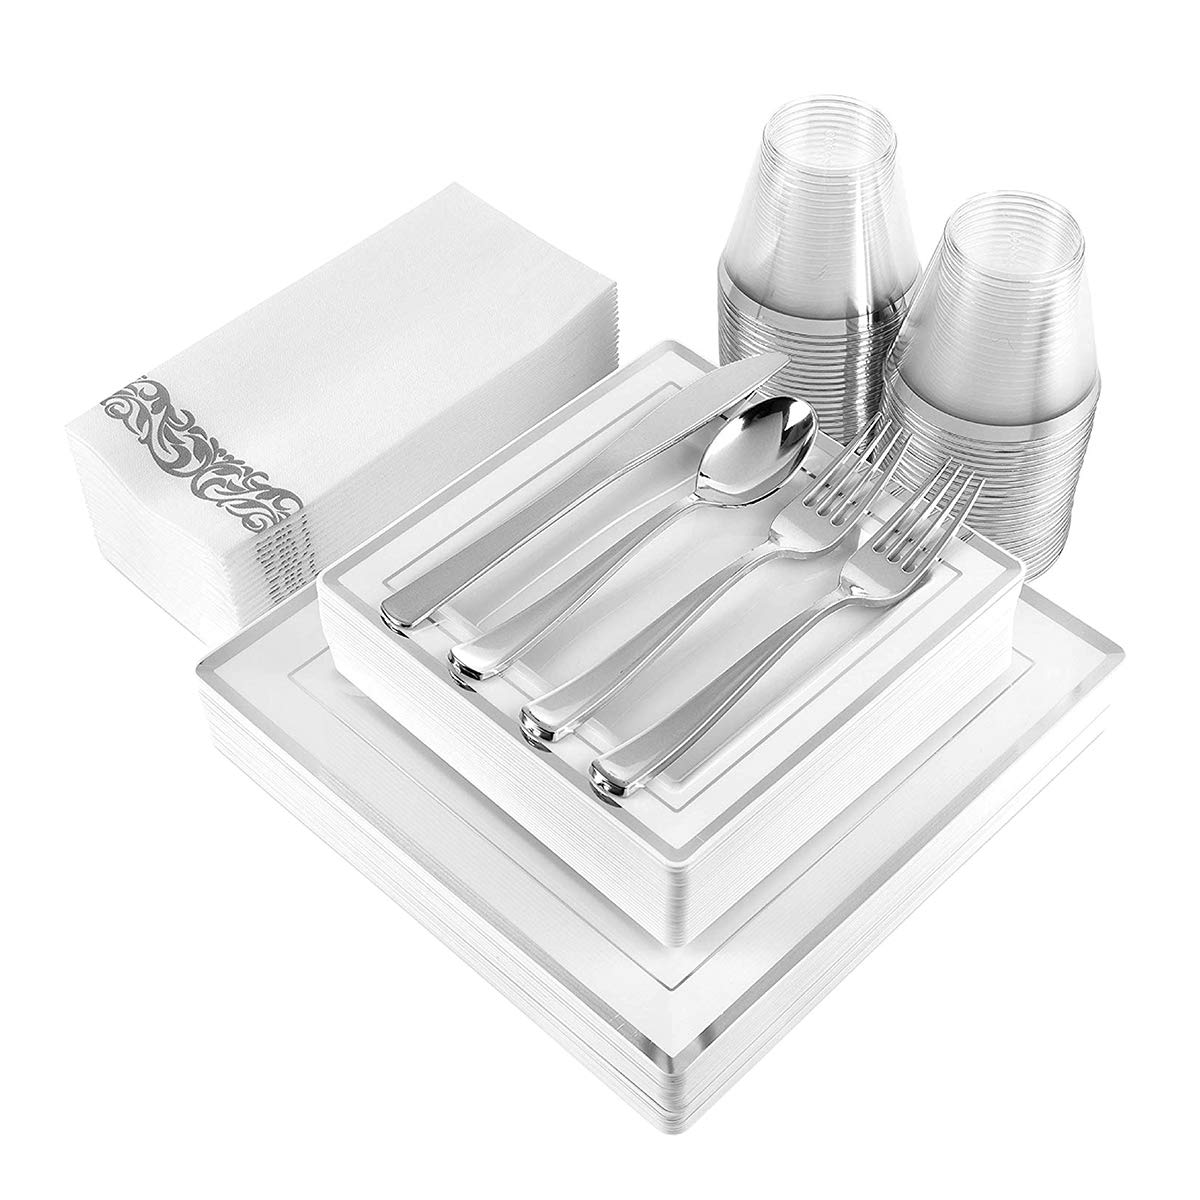 200 Piece Disposable Dinnerware Set for Weddings, Parties and Holidays: 25 Dinner Plates, 25 Dessert Plates, 25 Cups, 50 Forks, 25 Spoons, 25 Knives, 25 Guest Towels (Silver Square)